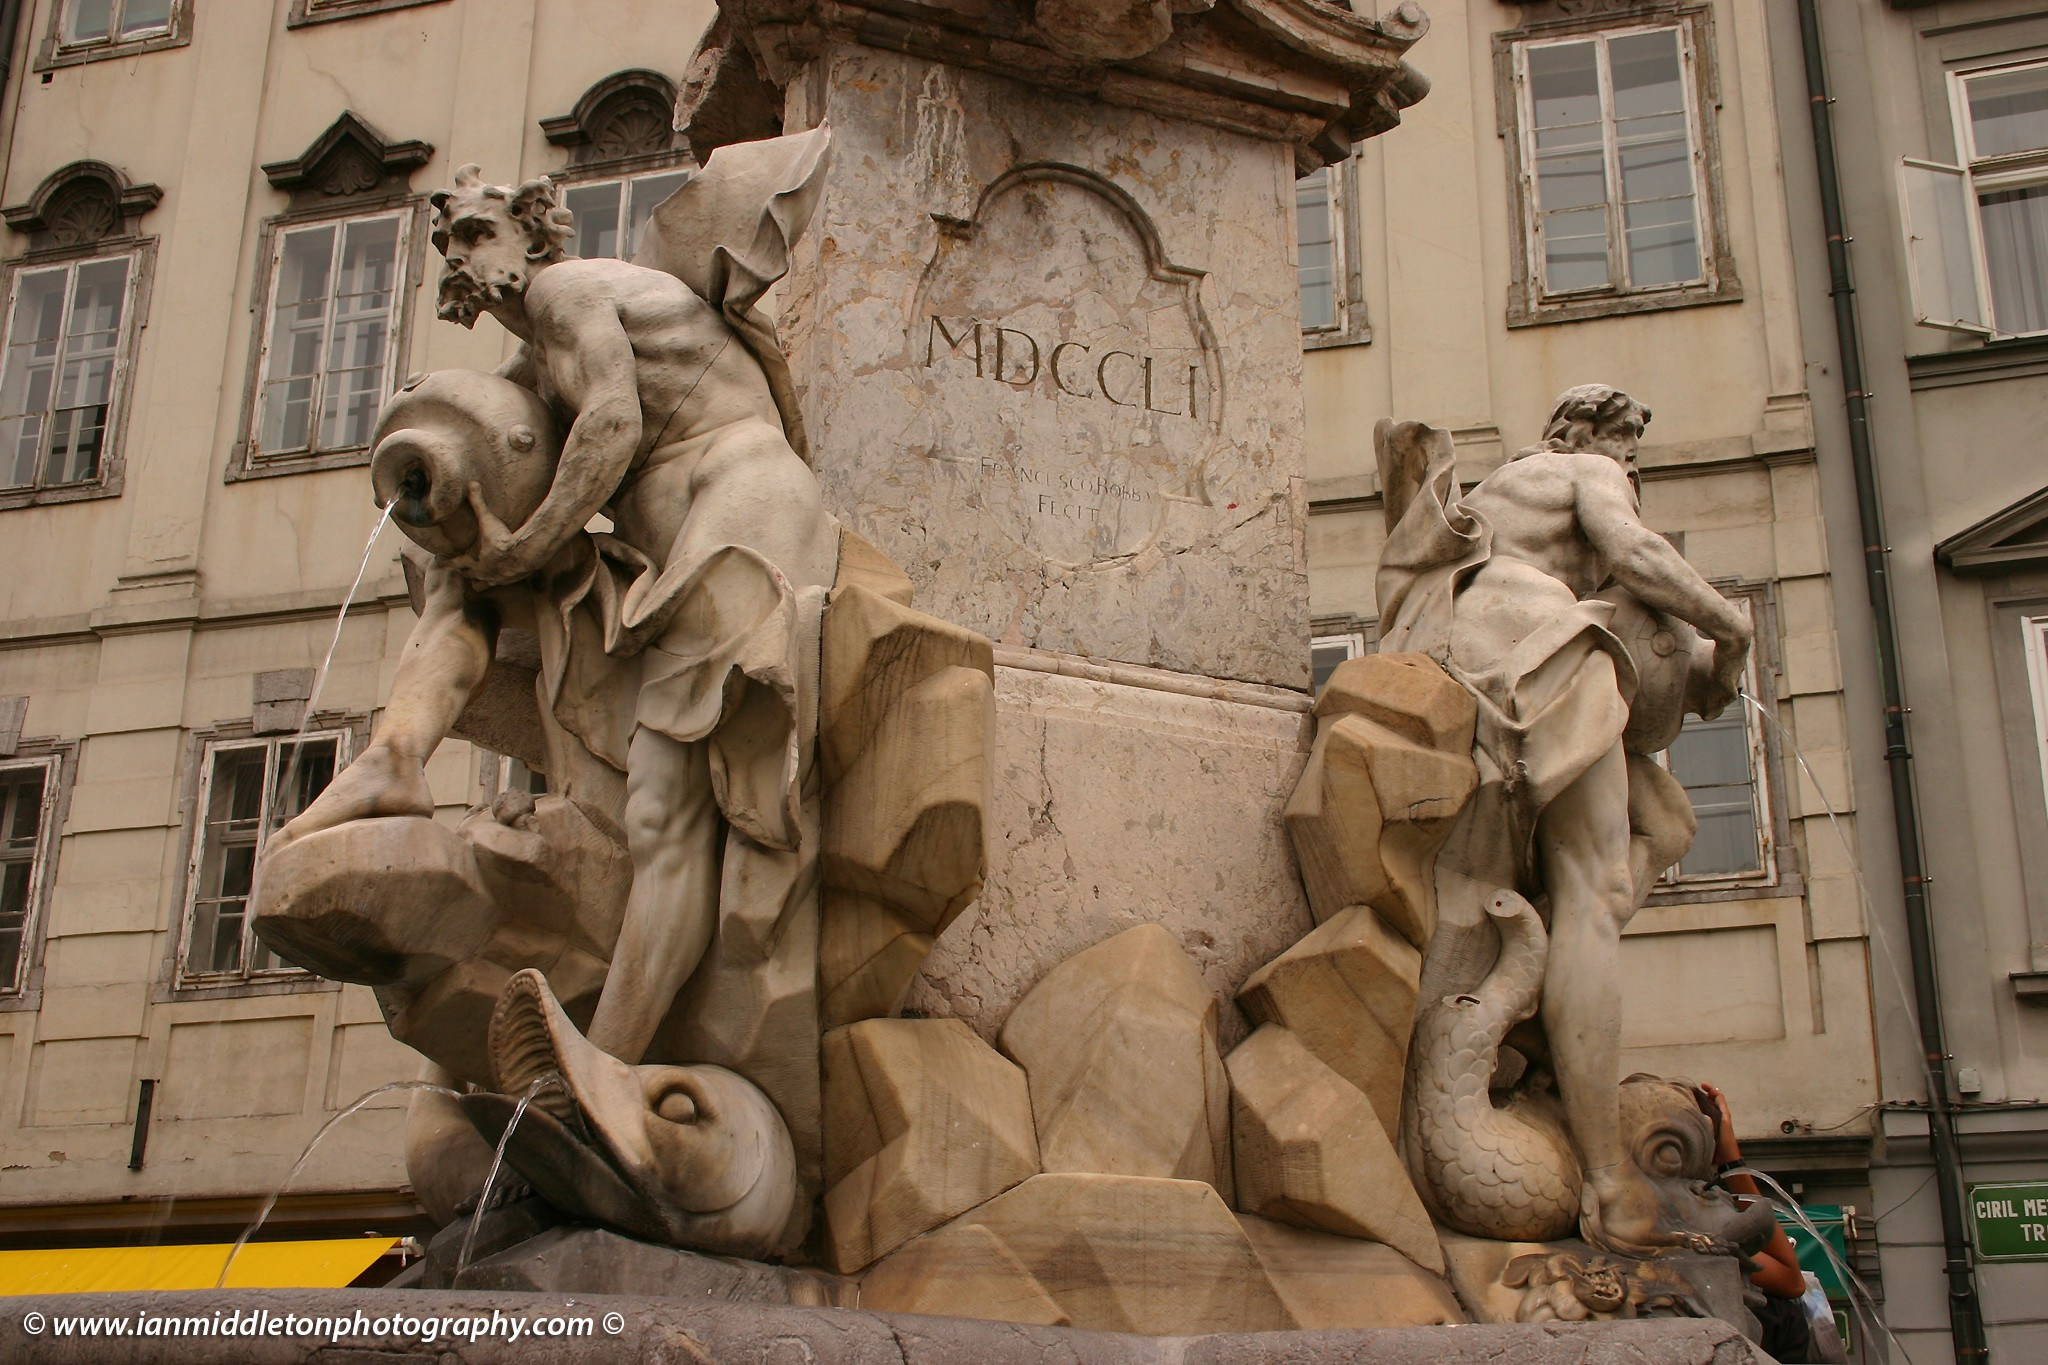 The original Robba Fountain, originally known as the Fountain of the Three Carniolan Rivers, Ljubljana, Slovenia. This was taken before it was moved to the National Gallery of Slovenia.